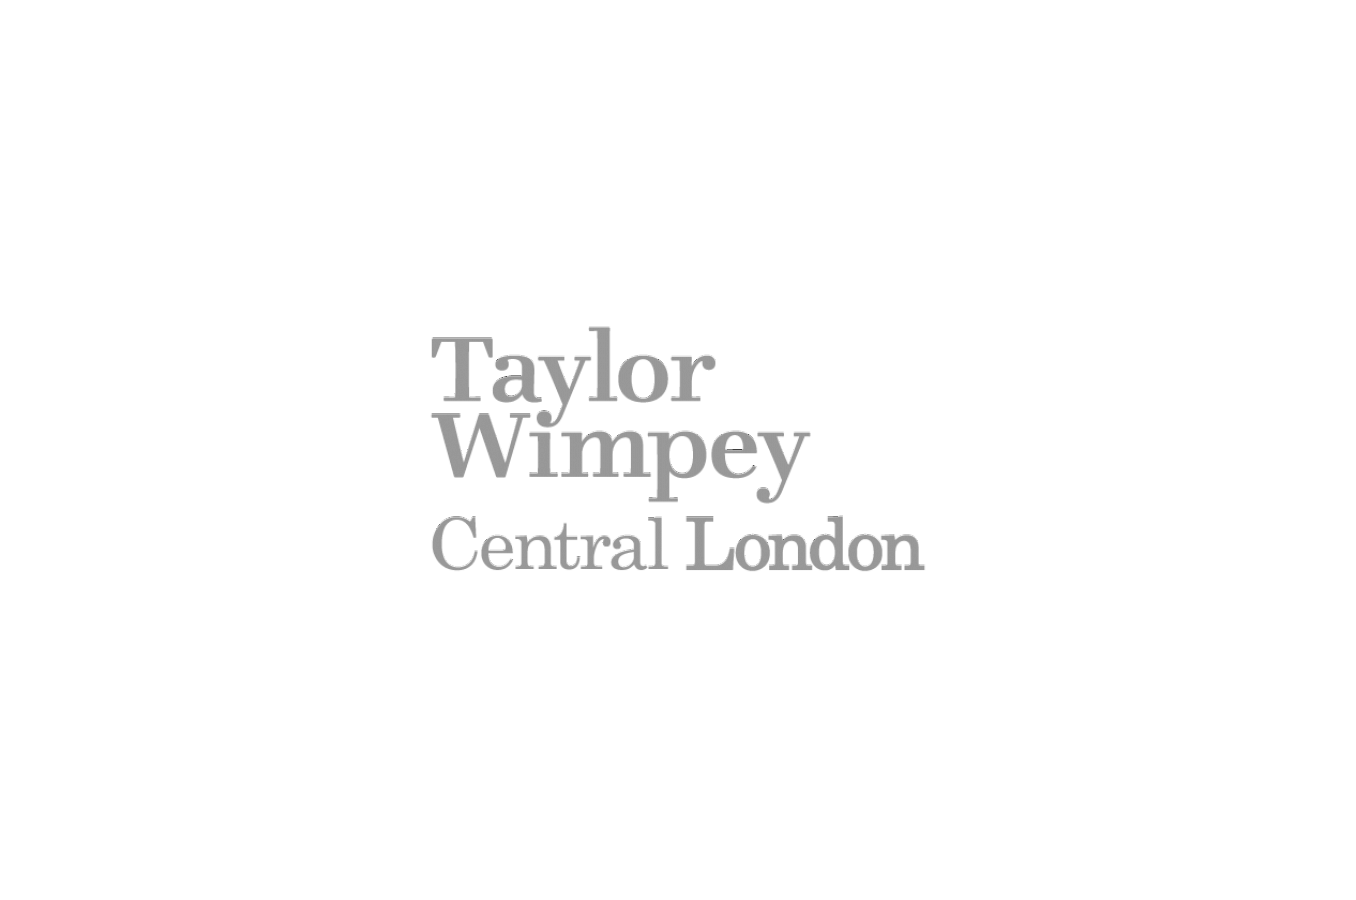 Taylor Wimpey Central London